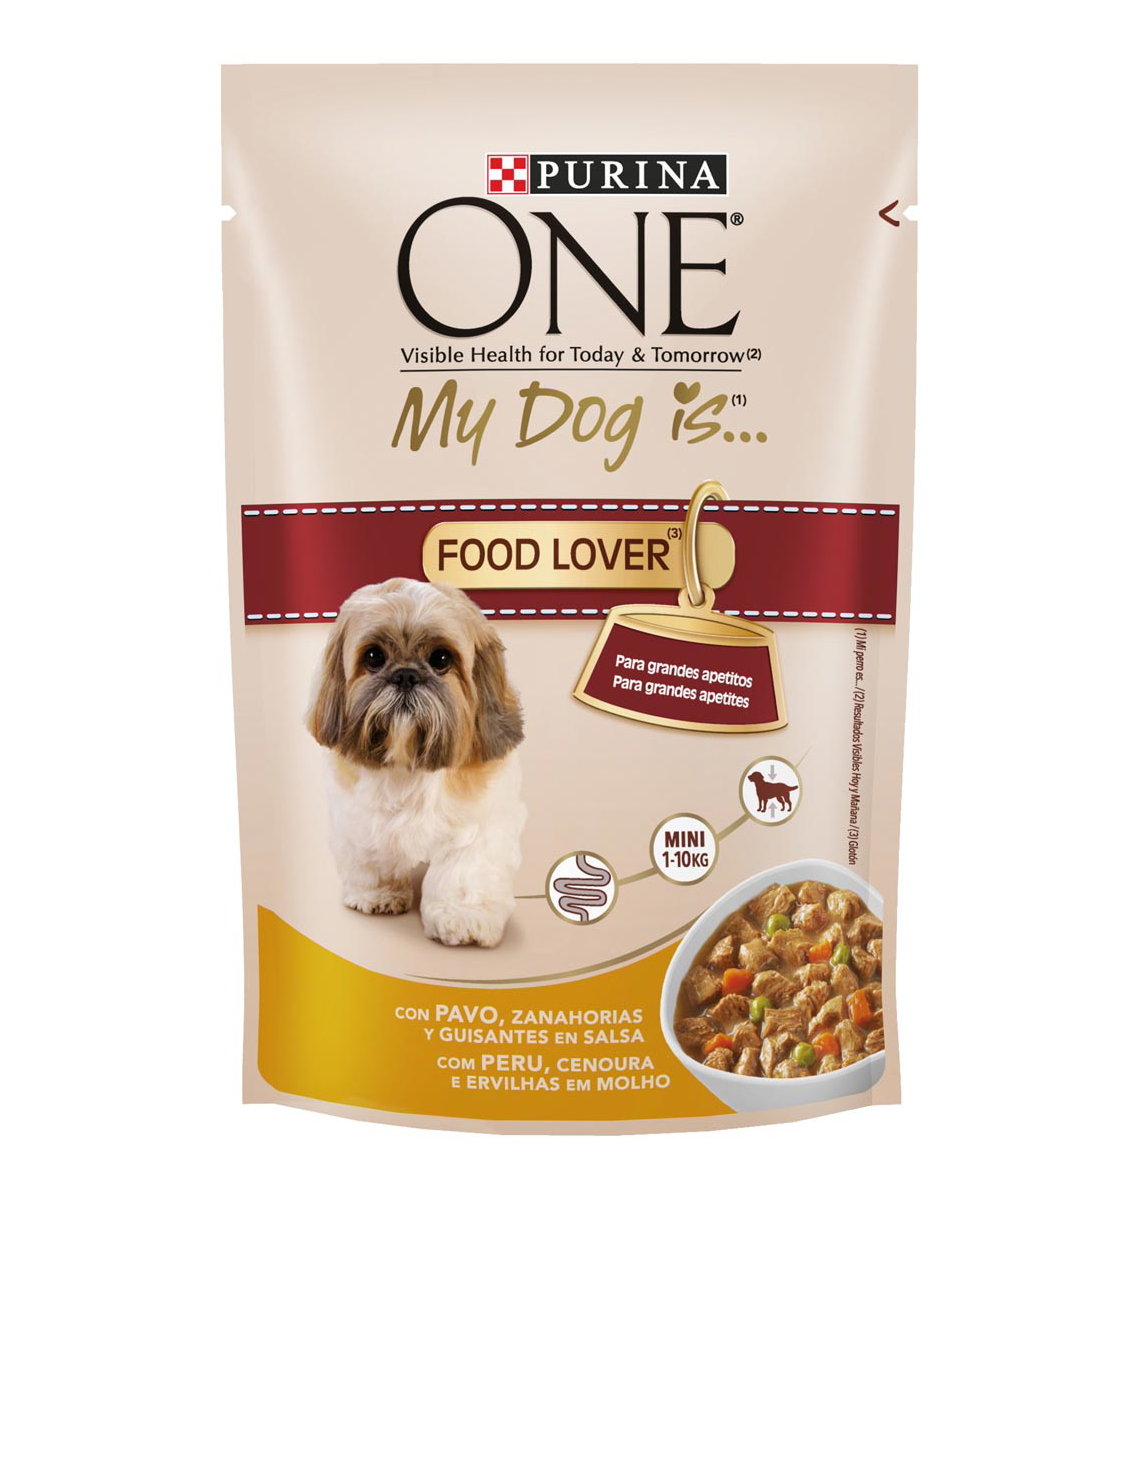 Purina One my dog is food lover alimento humedo perros raza mini pavo con verduras en salsa de 100g. en bolsa